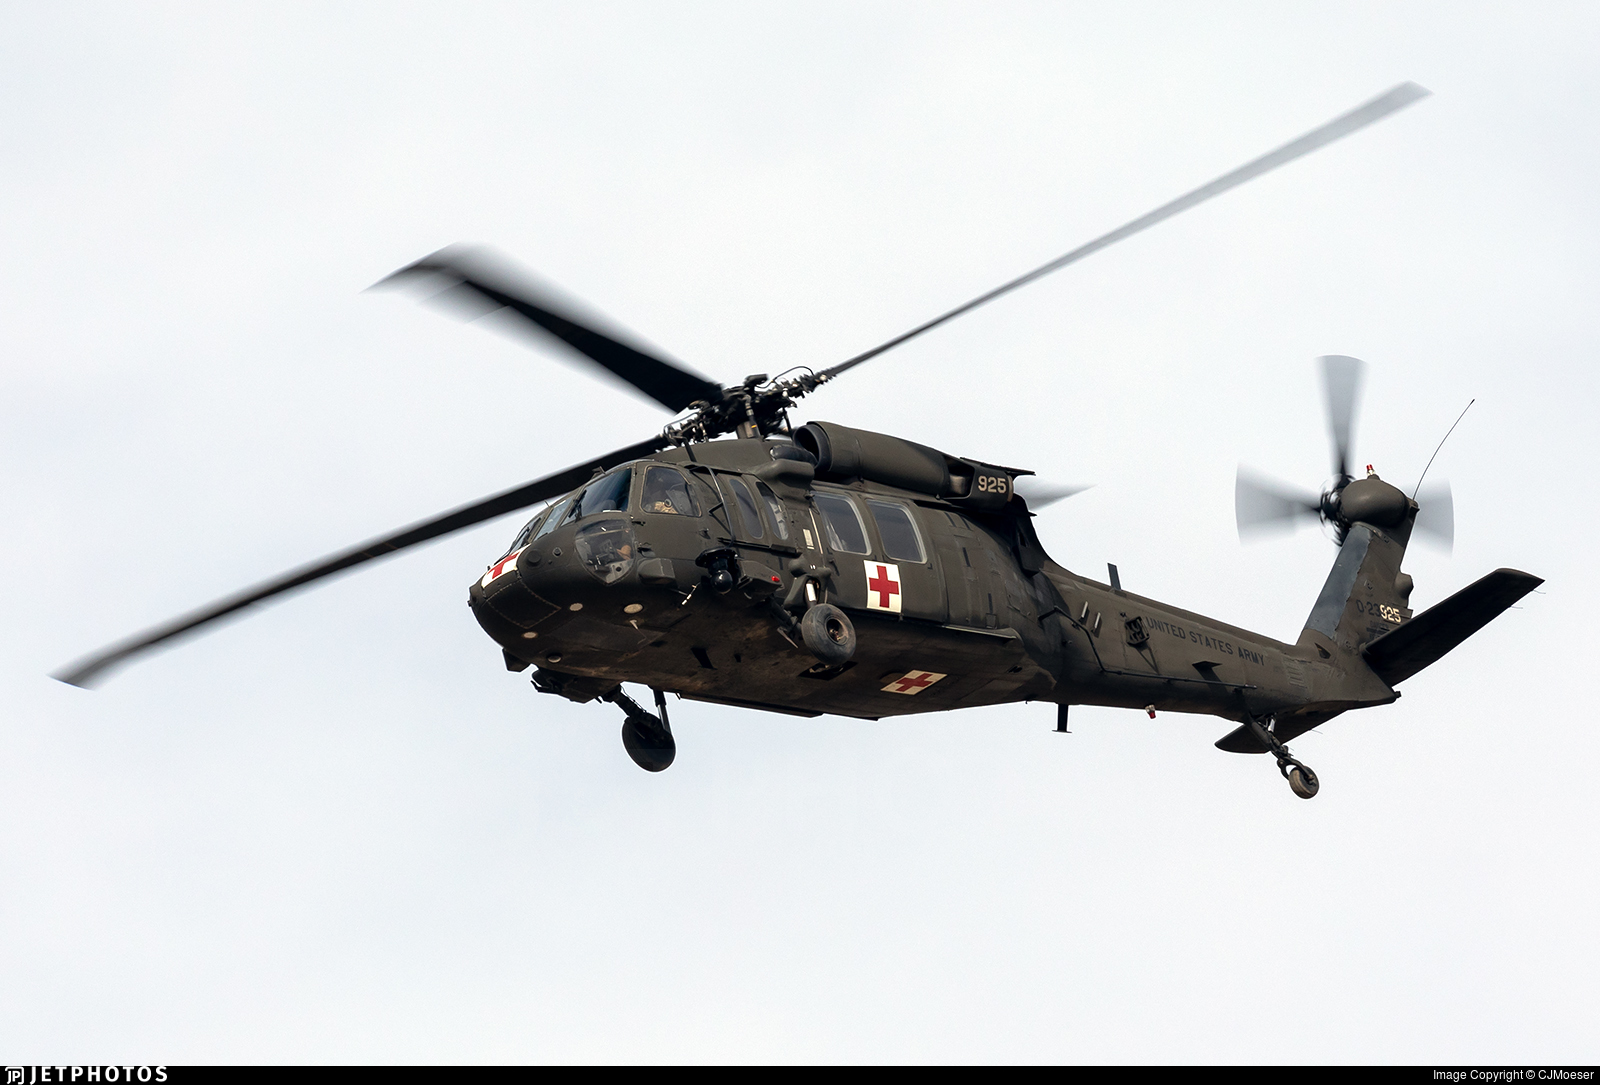 83-23925 - Sikorsky UH-60A Blackhawk - United States - US Army